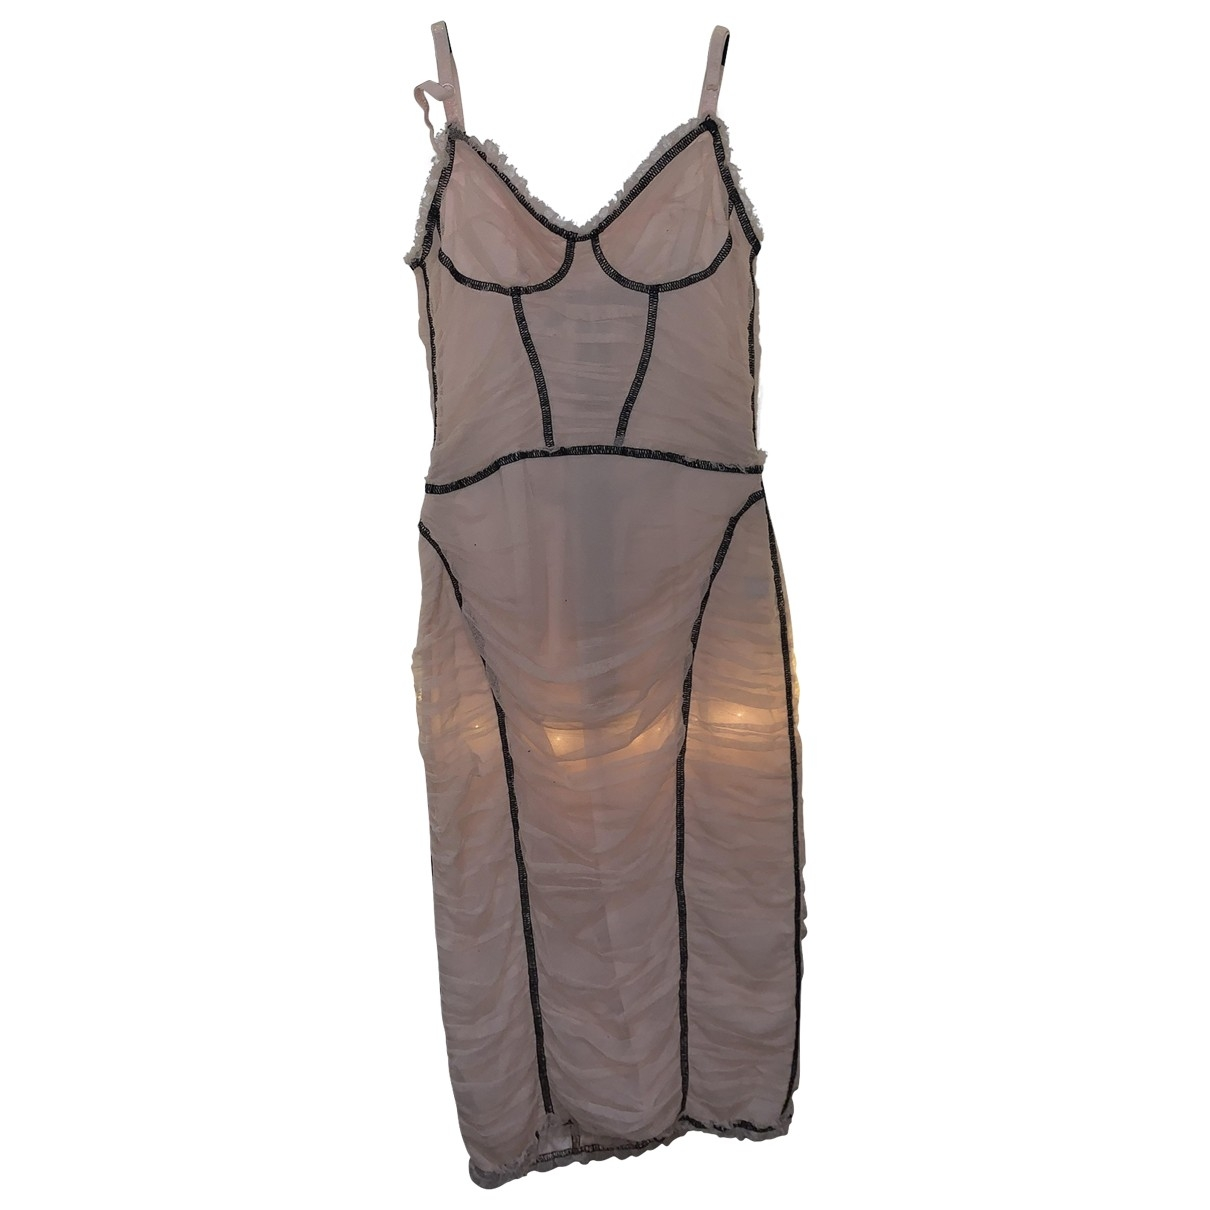 D&g \N Pink Lace dress for Women 40 FR